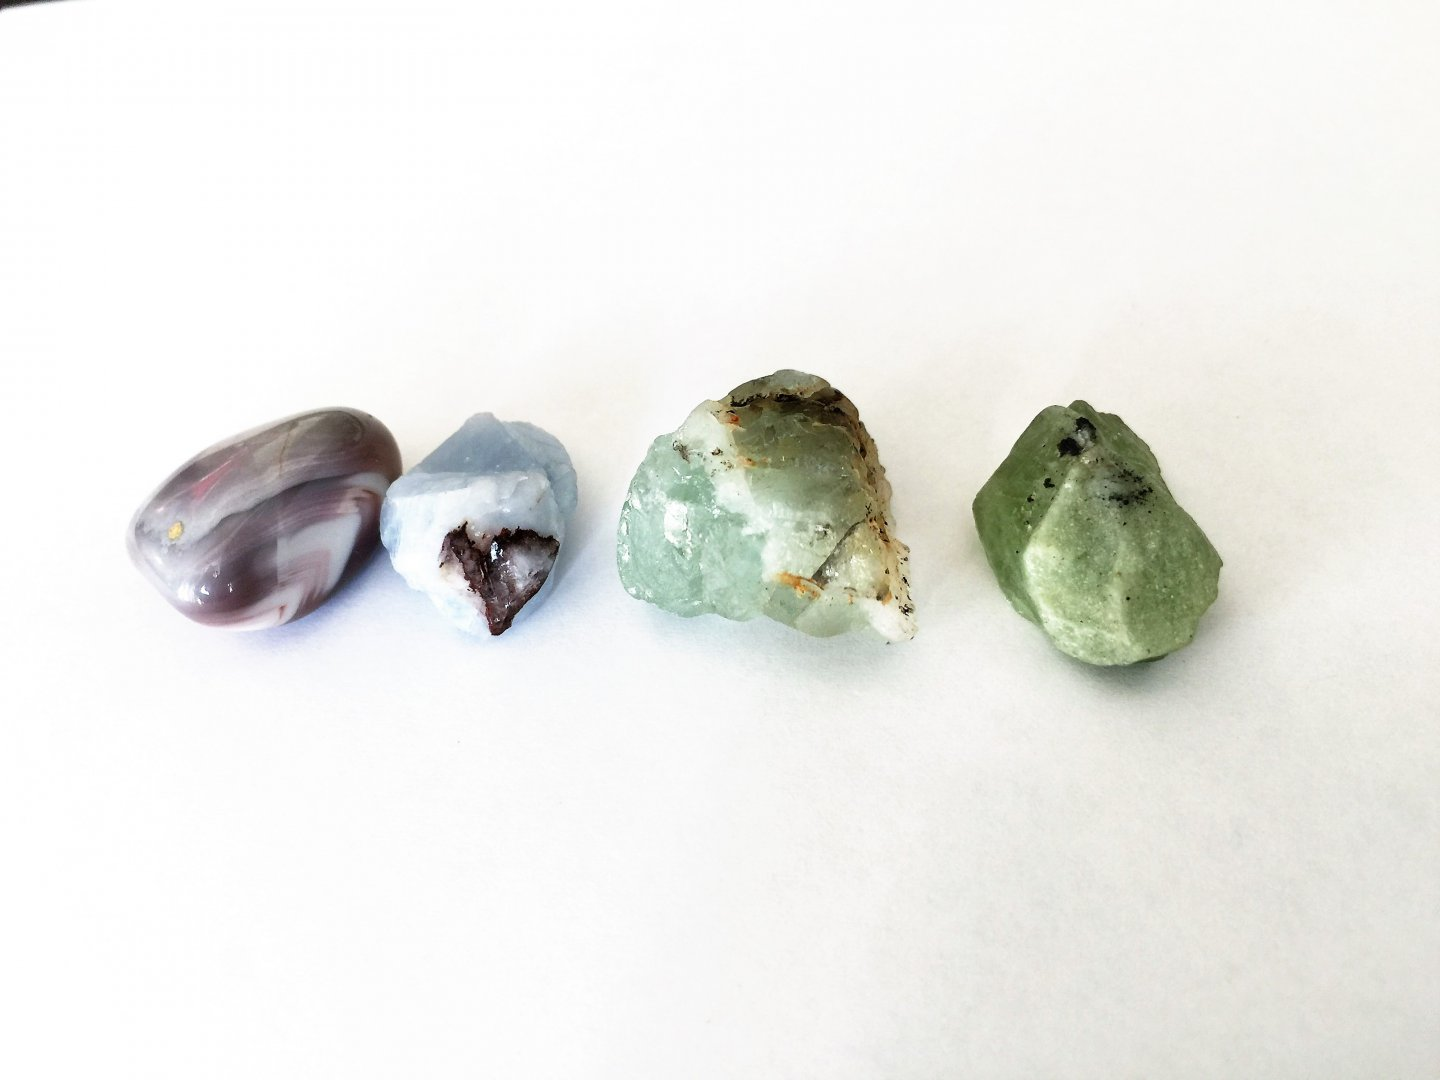 Chakras in Check: Meditation, Crystals and Stones